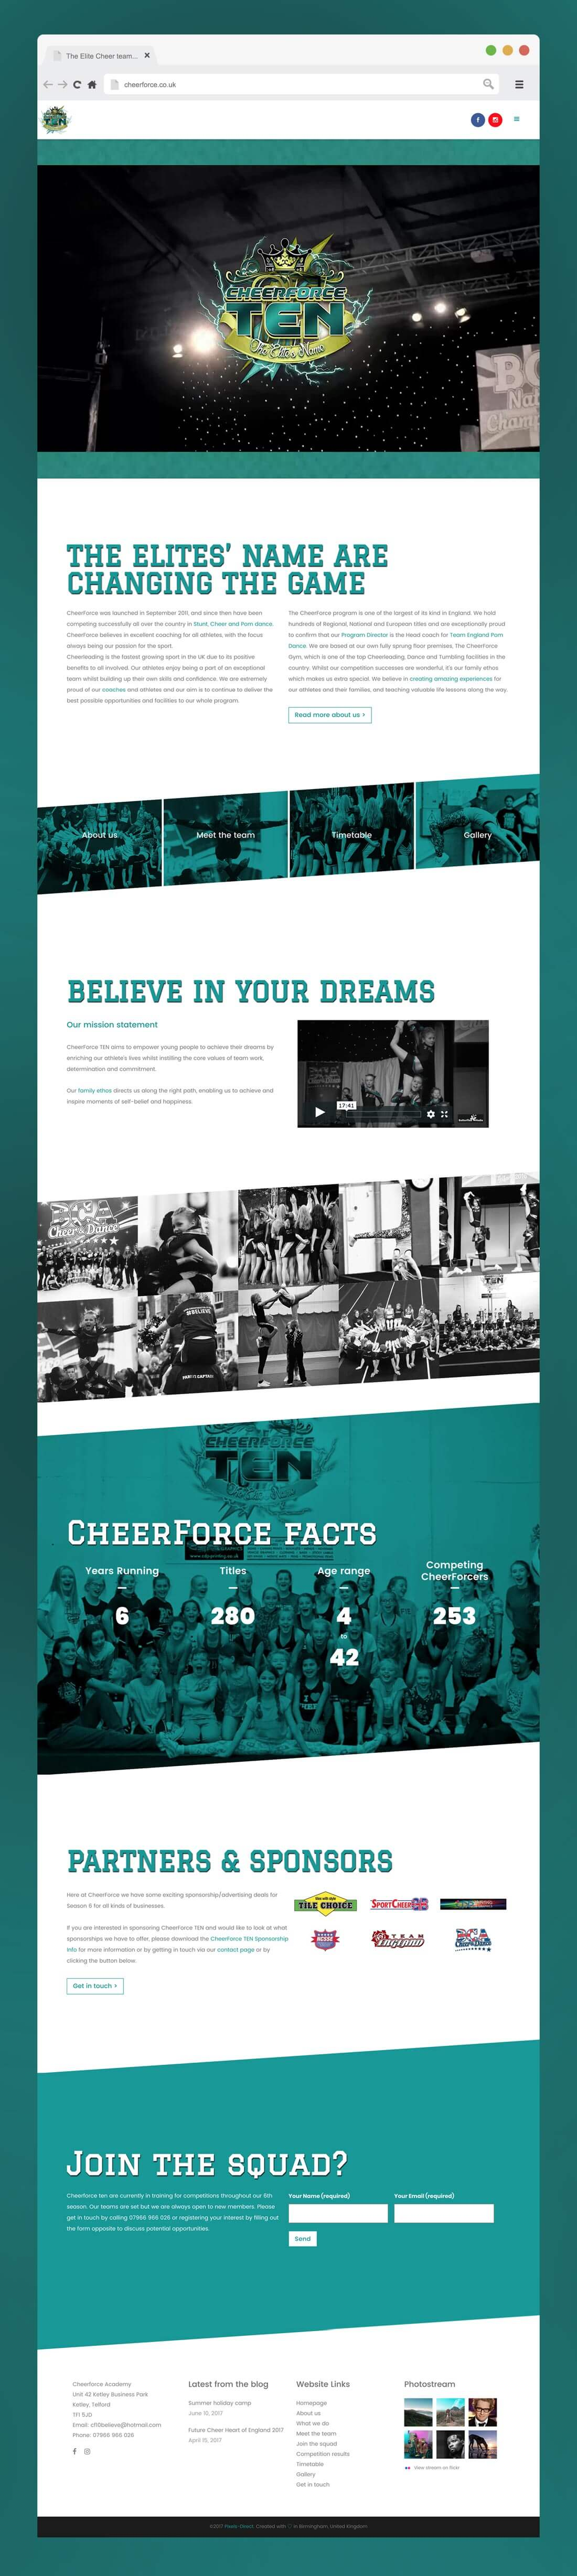 Website design for Cheerforce TEN, homepage visual